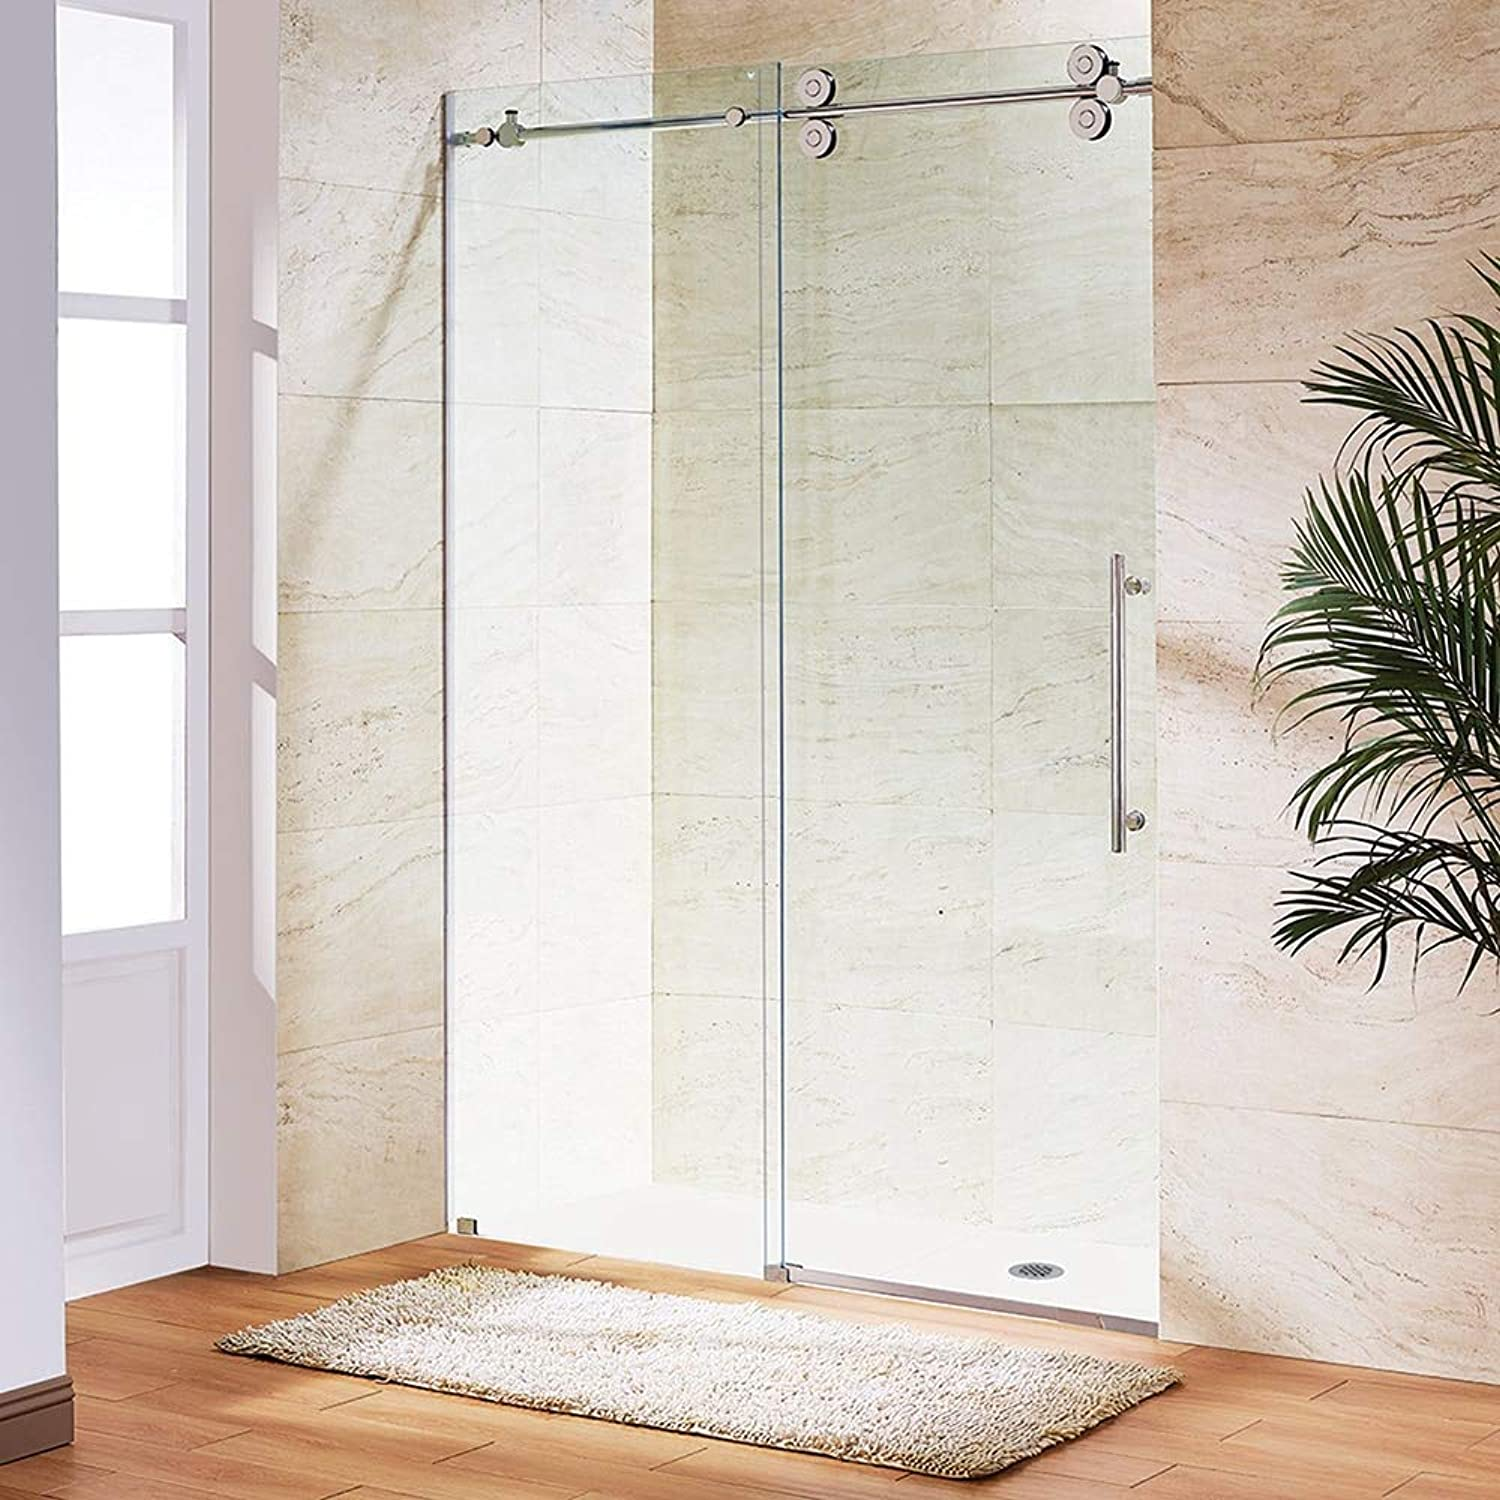 Frameless Glass Sliding Shower Door Stainless Steel 69mm Roller Shower Enclosure Kit Mirror Finish  (Length  2m)